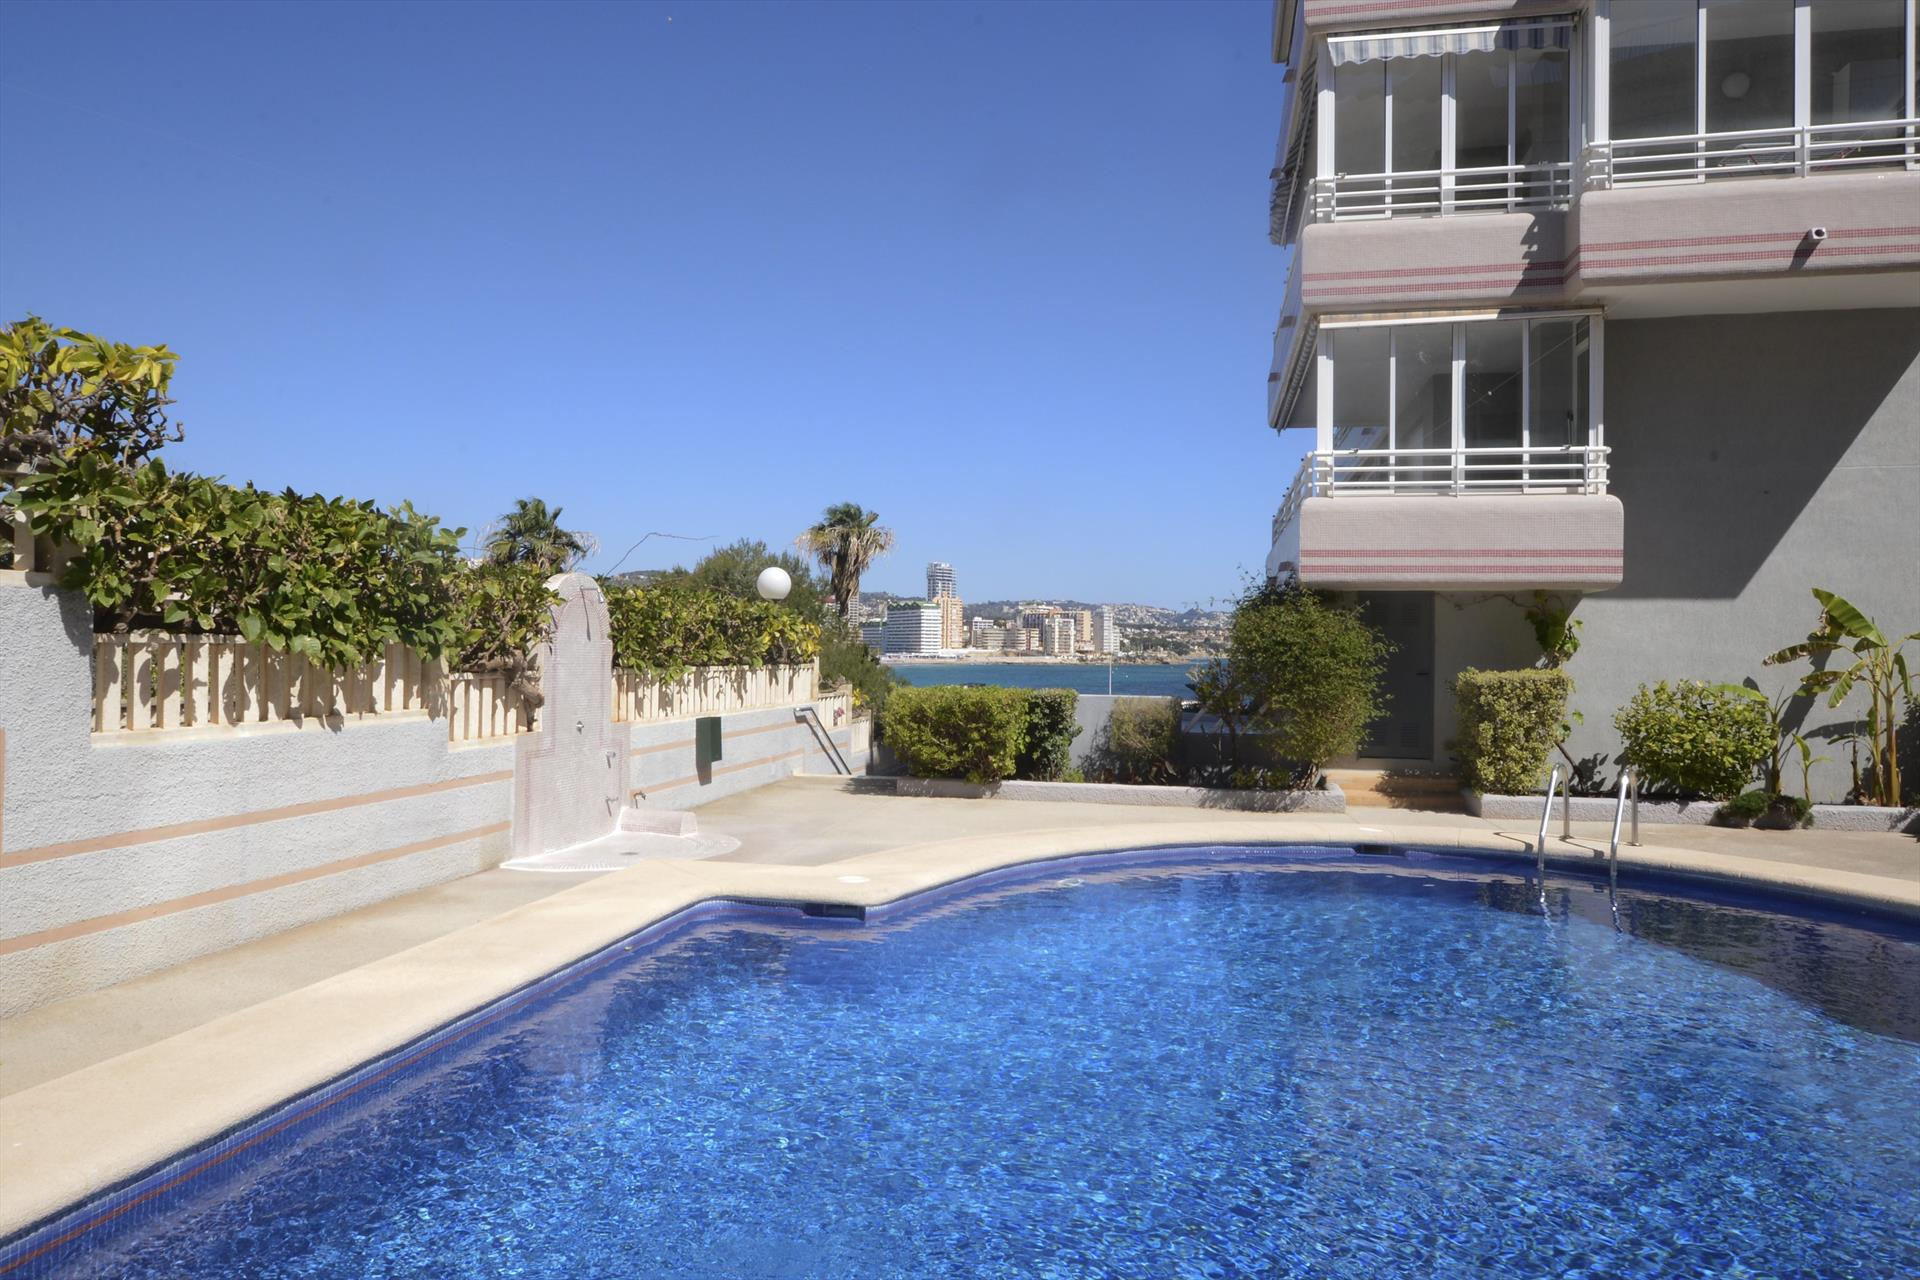 Apartamento Bahia Mar 3A, Apartment in Calpe, on the Costa Blanca, Spain  with communal pool for 6 persons.....